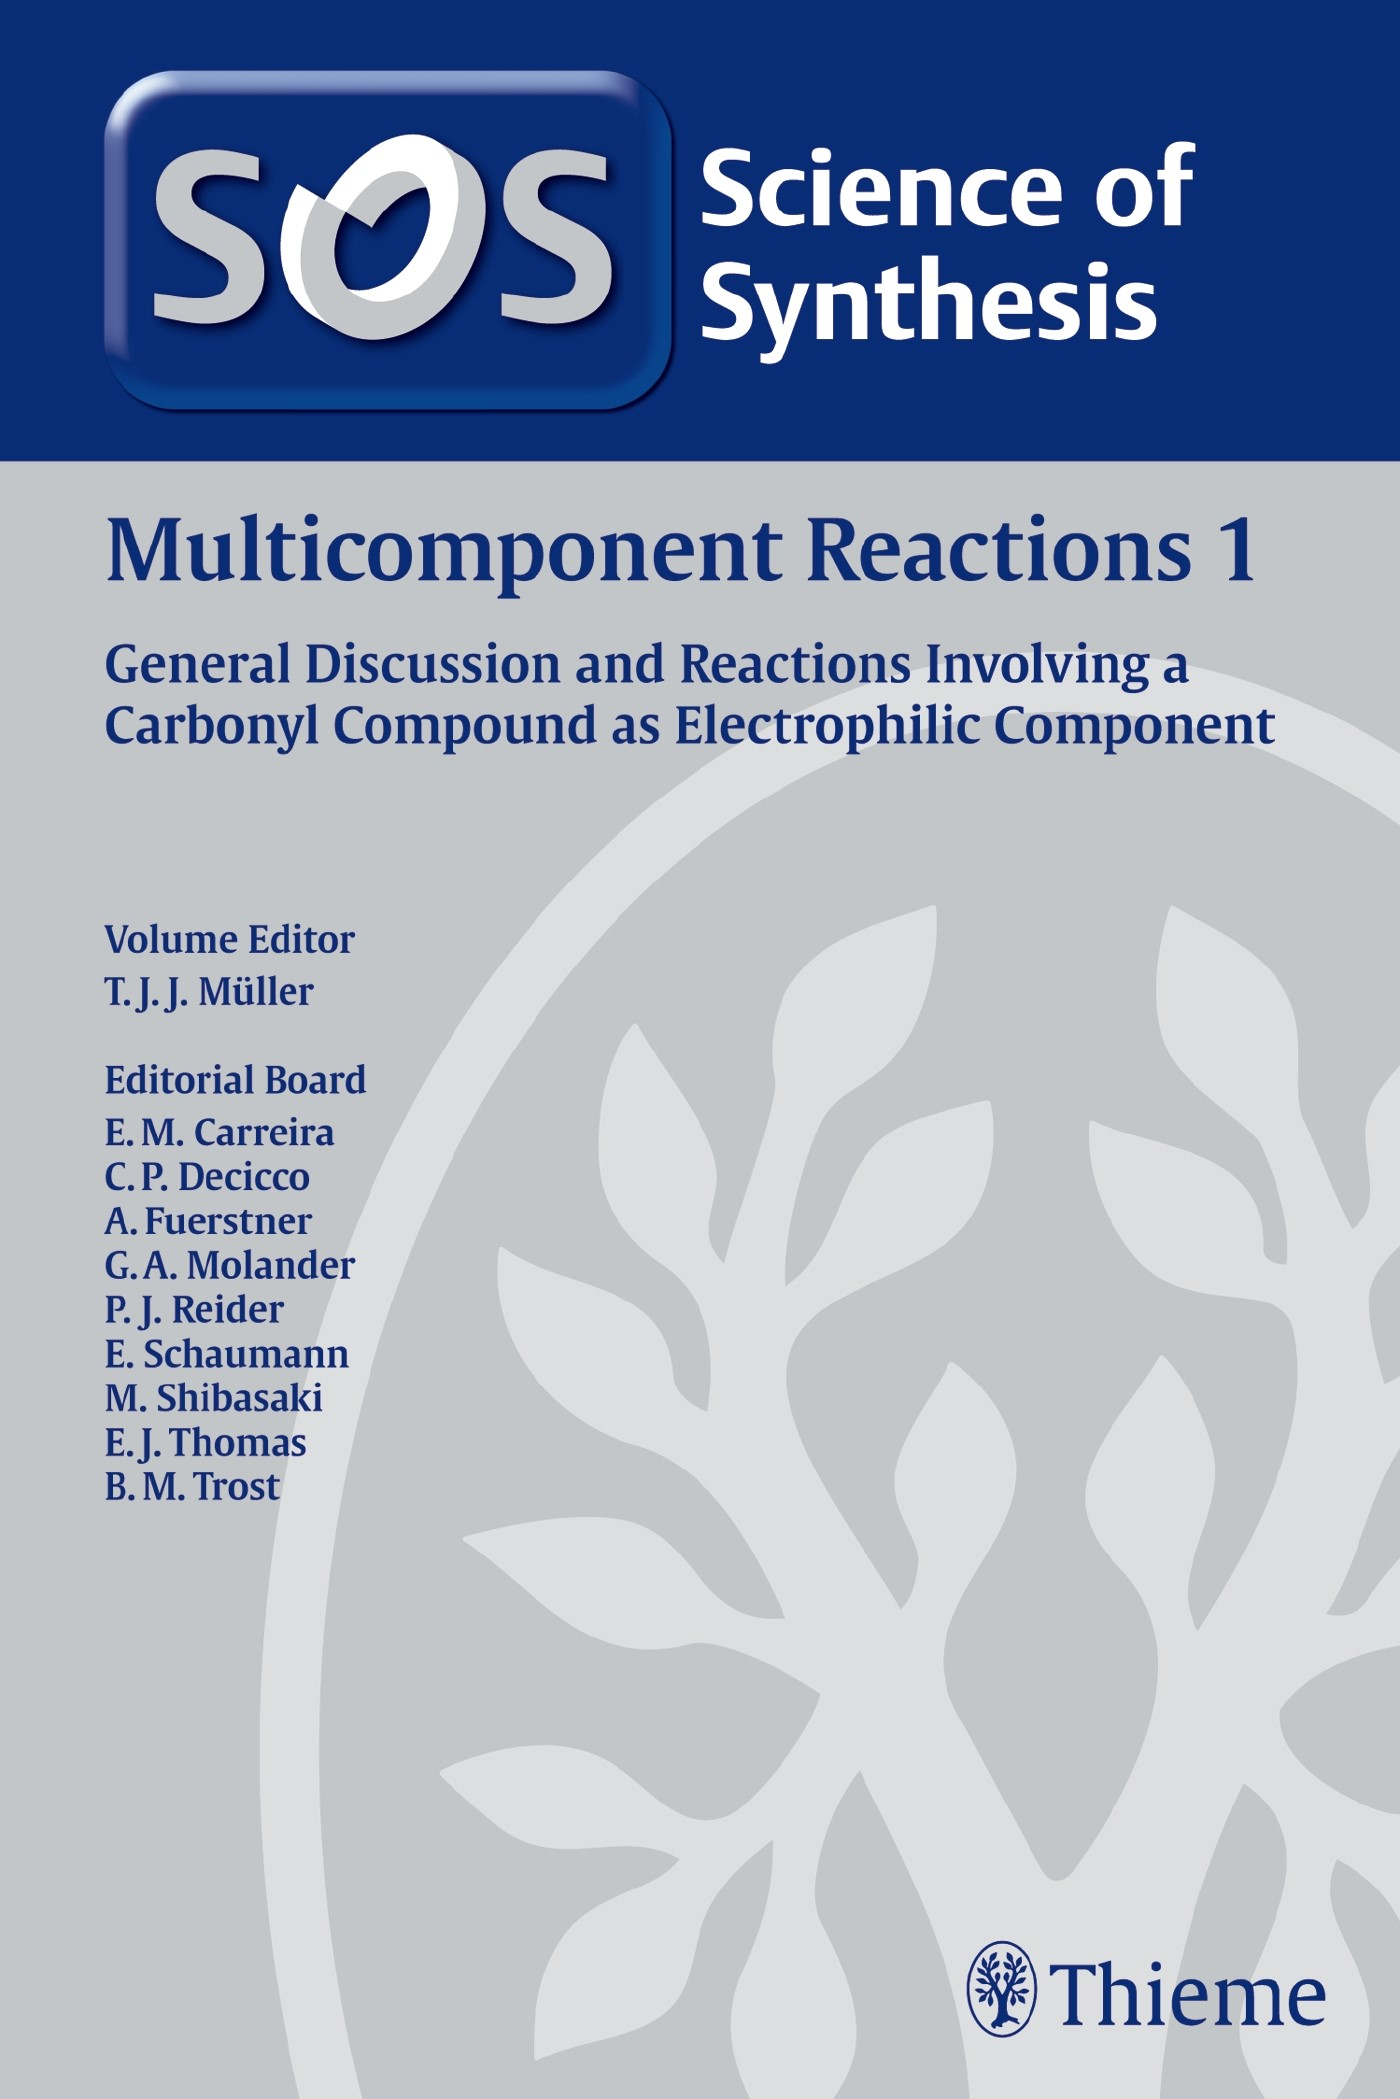 Abbildung von Science of Synthesis: Multicomponent Reactions Vol. 1 | 2013